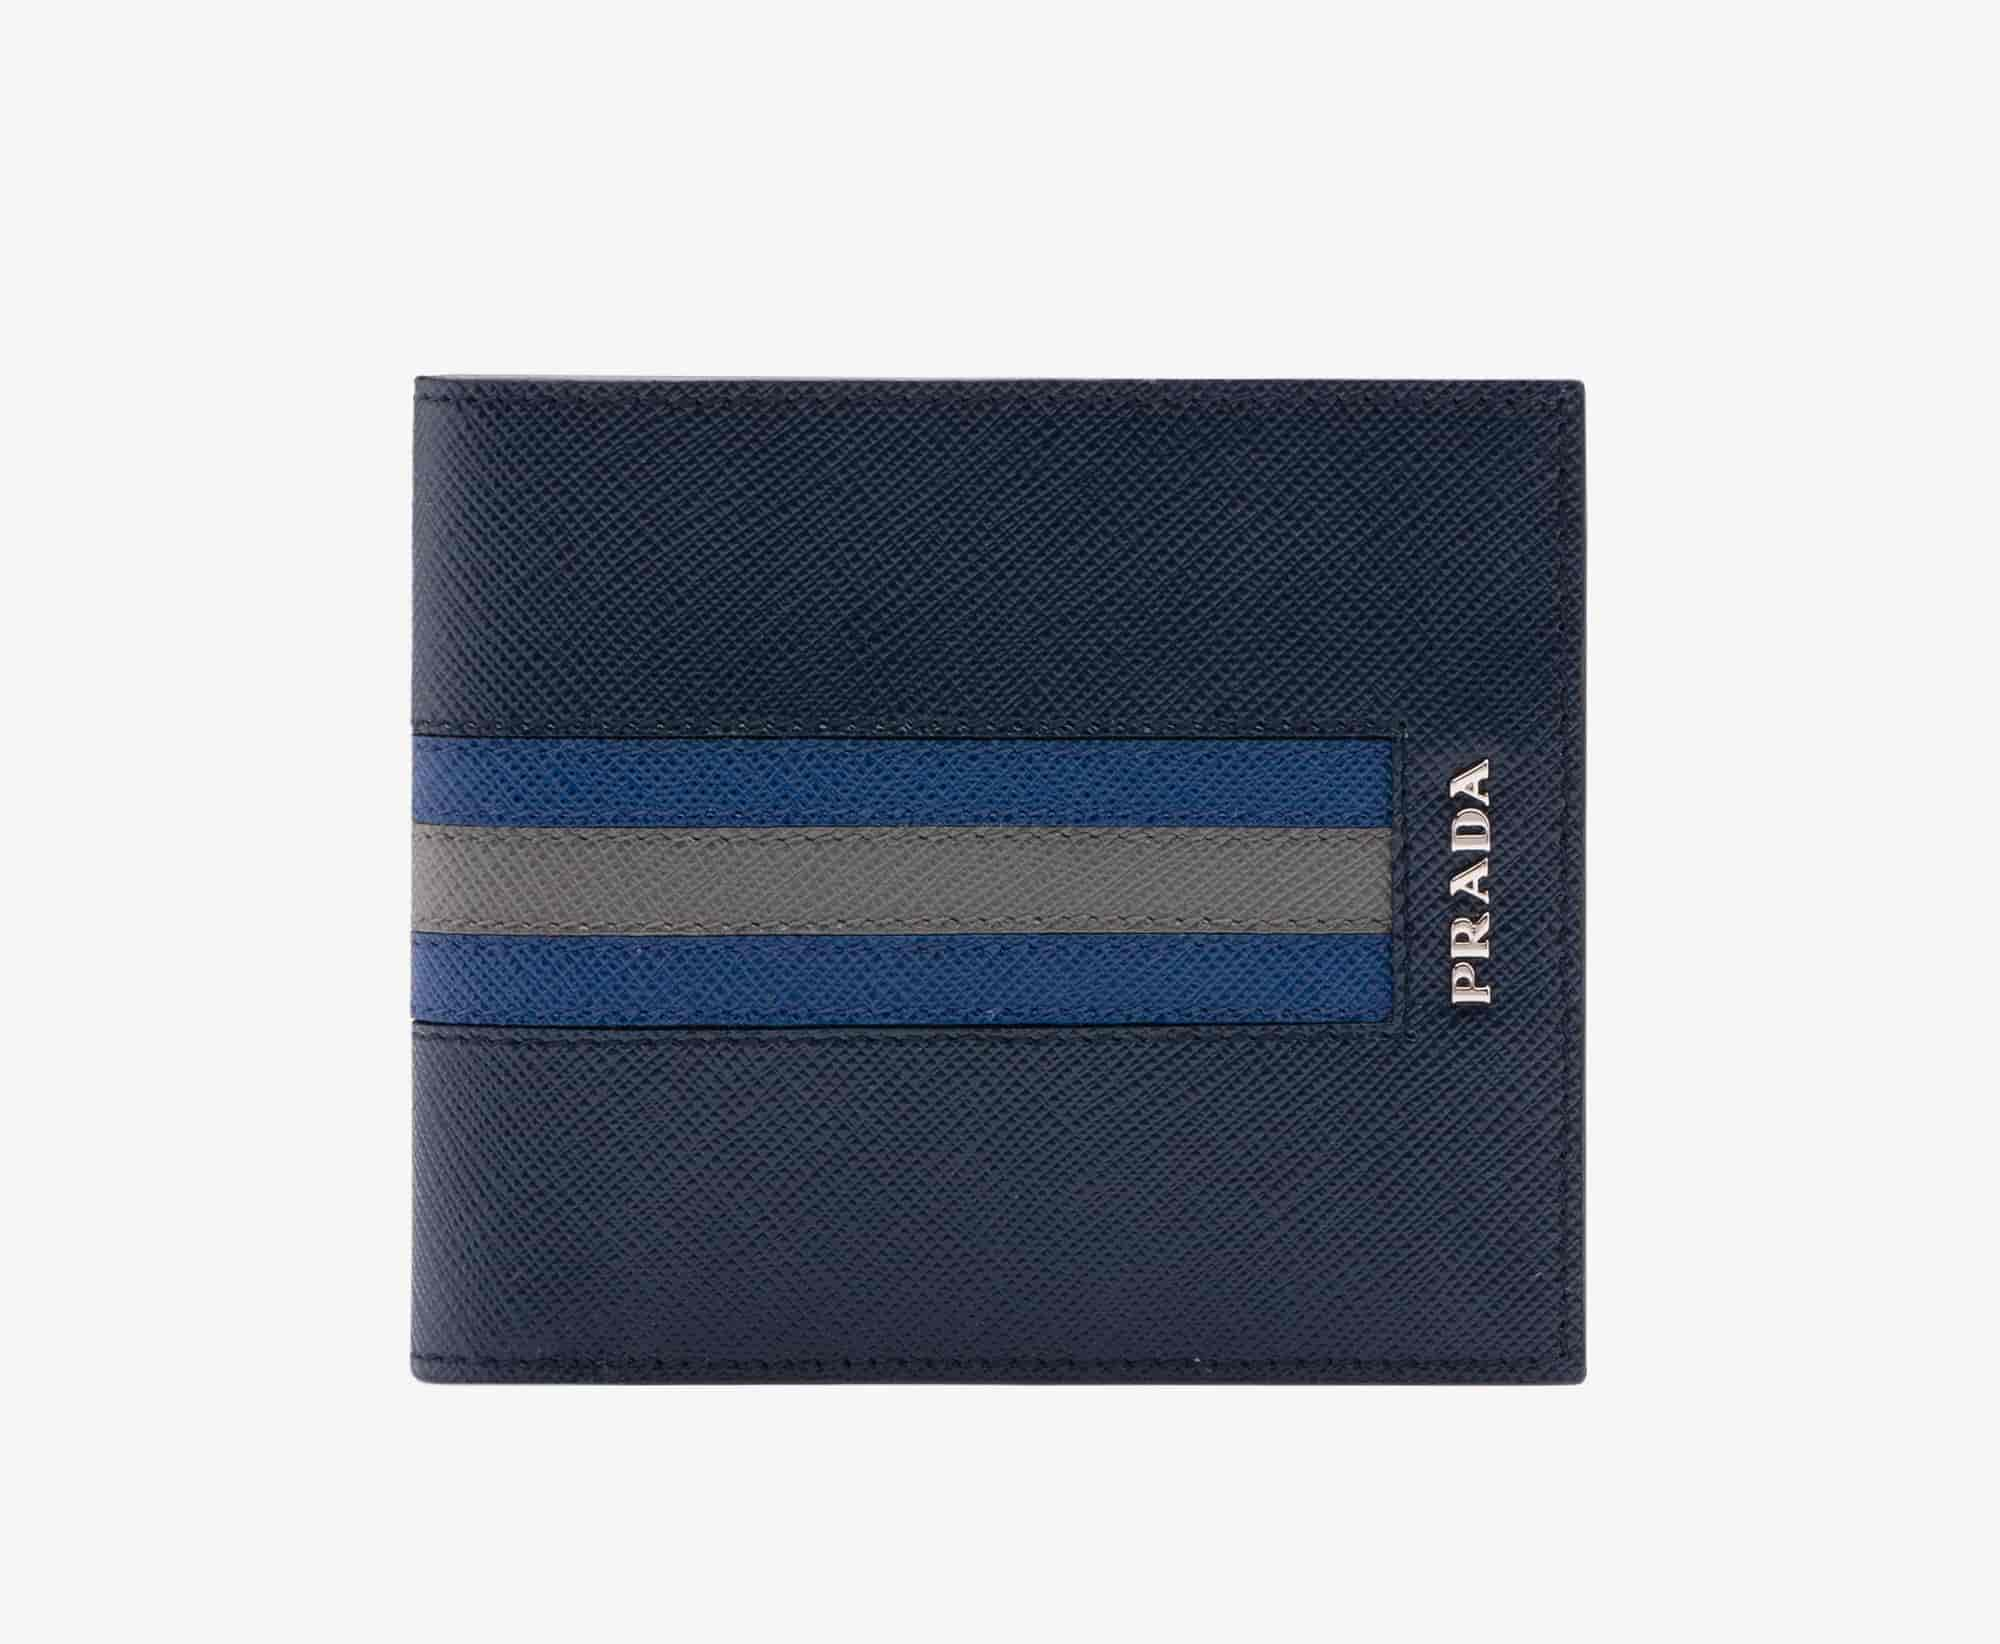 Prada Wallet Men Blue